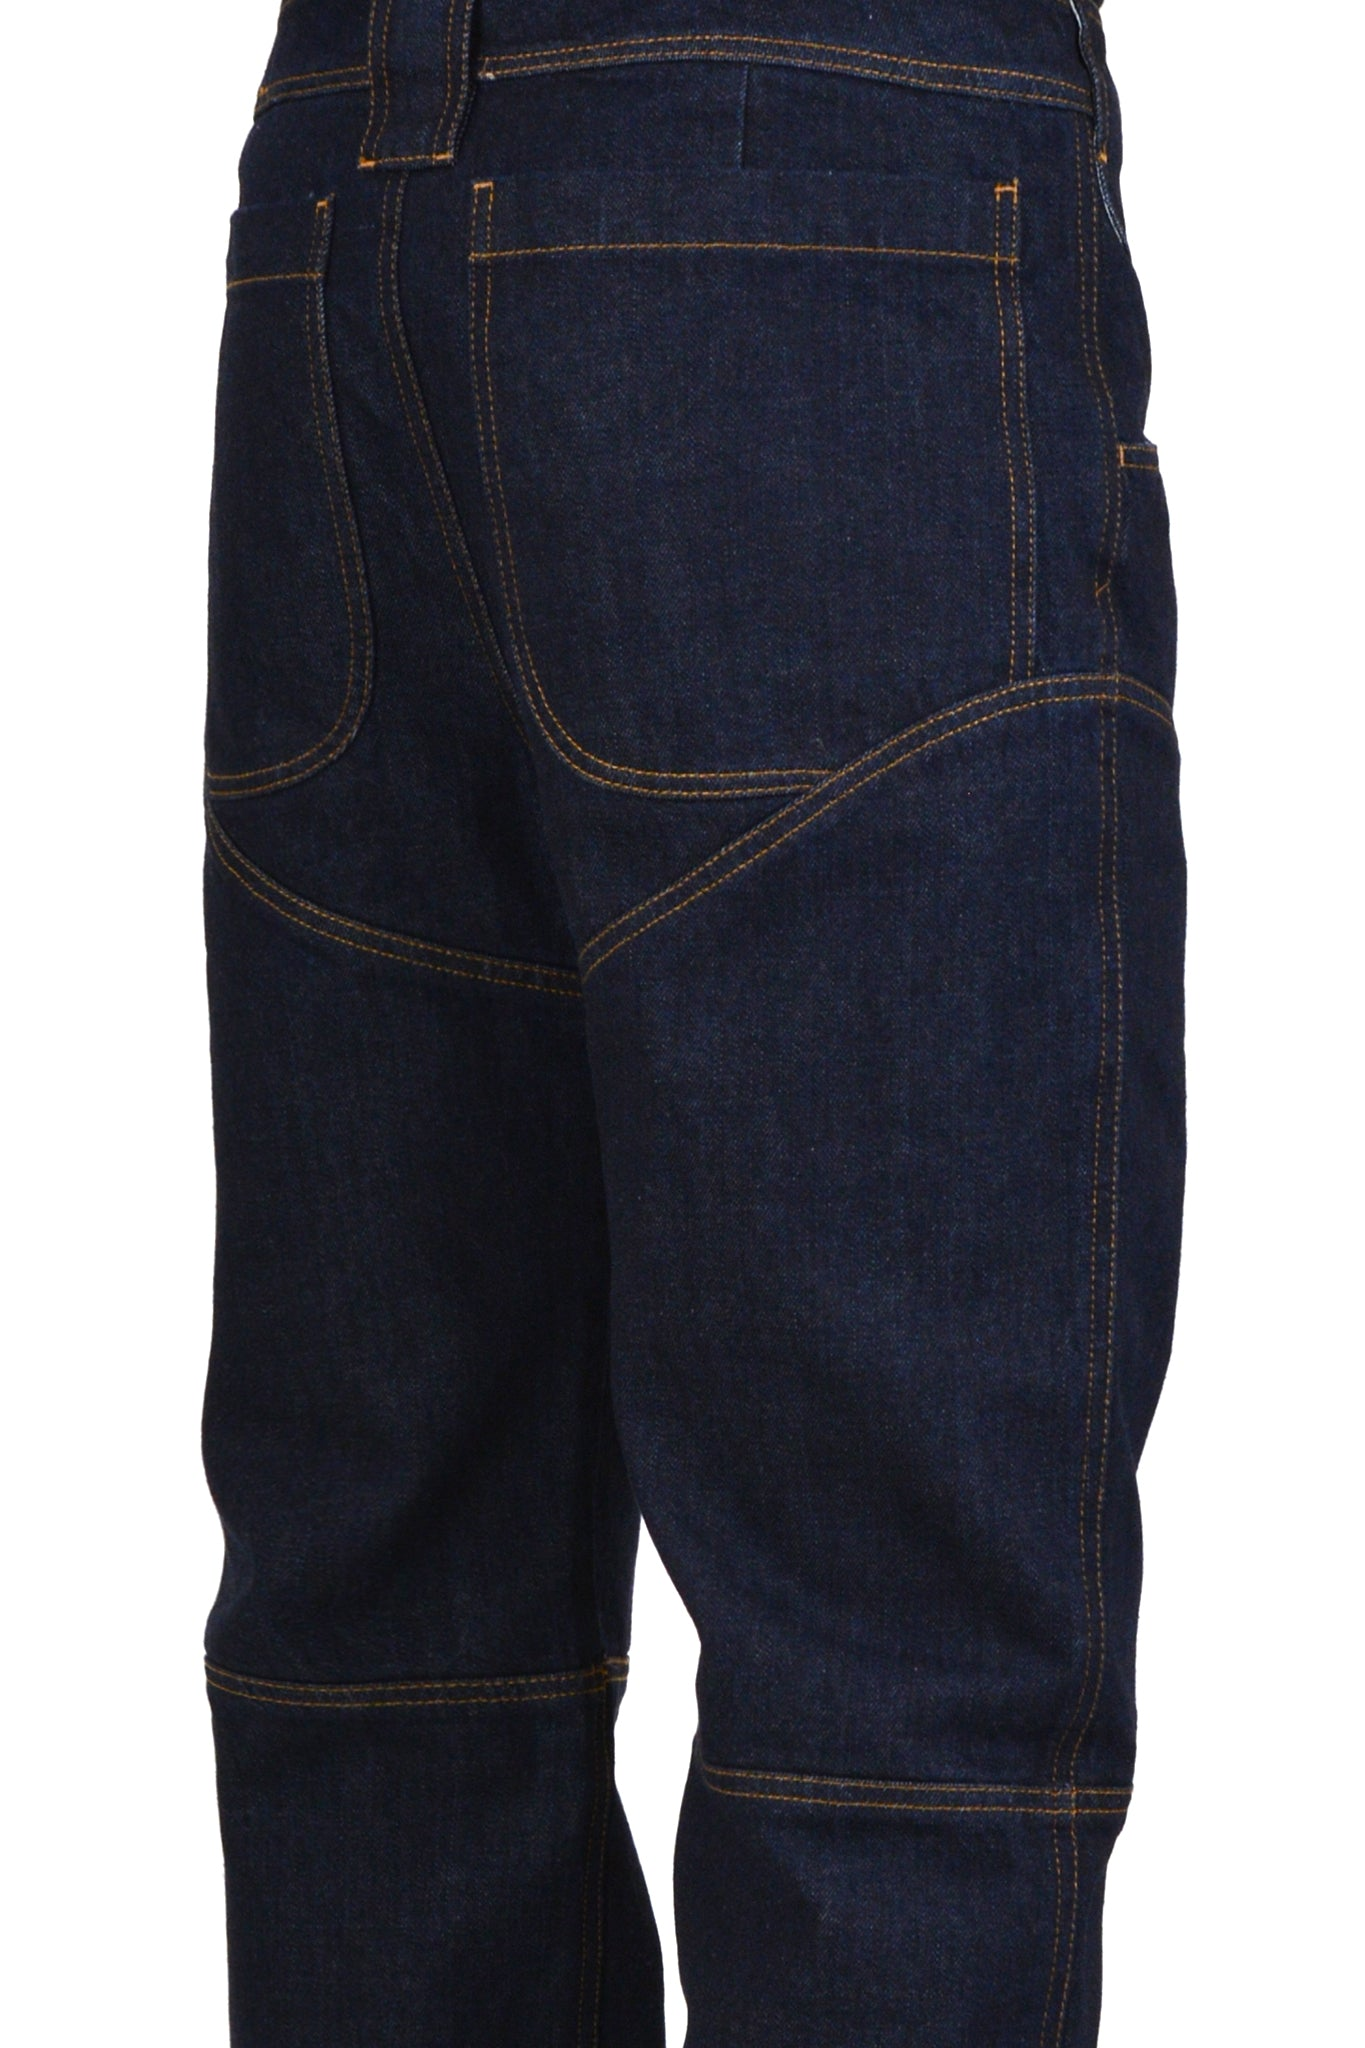 Telfar 3-Panel Straight Leg Jeans, Dark Denim